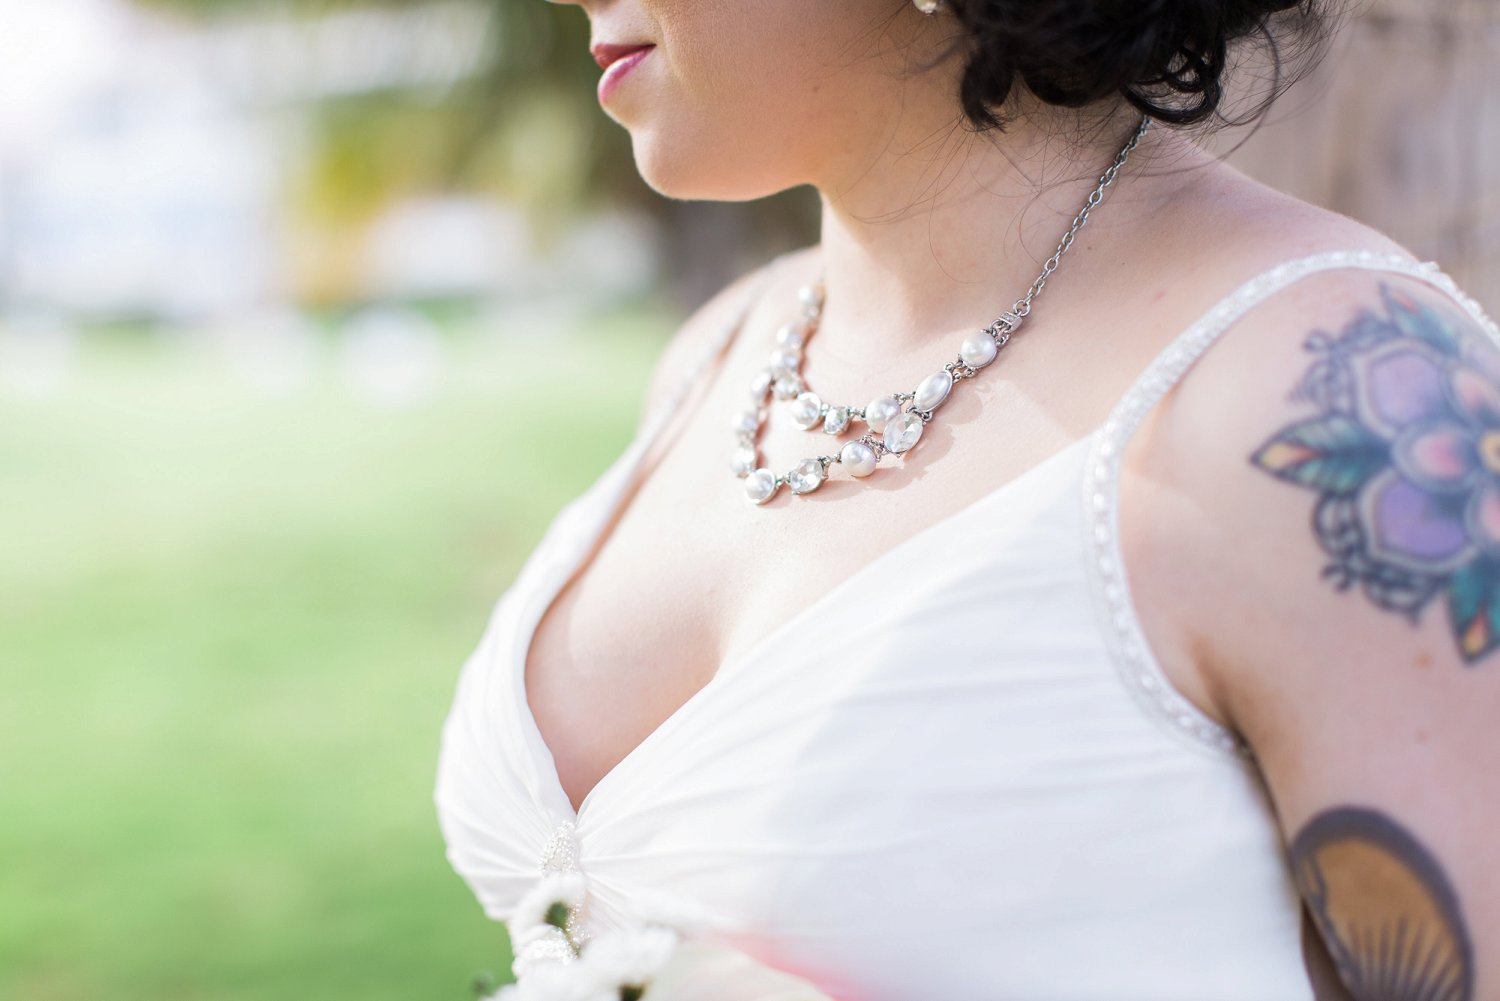 Chunky necklace worn by bride.